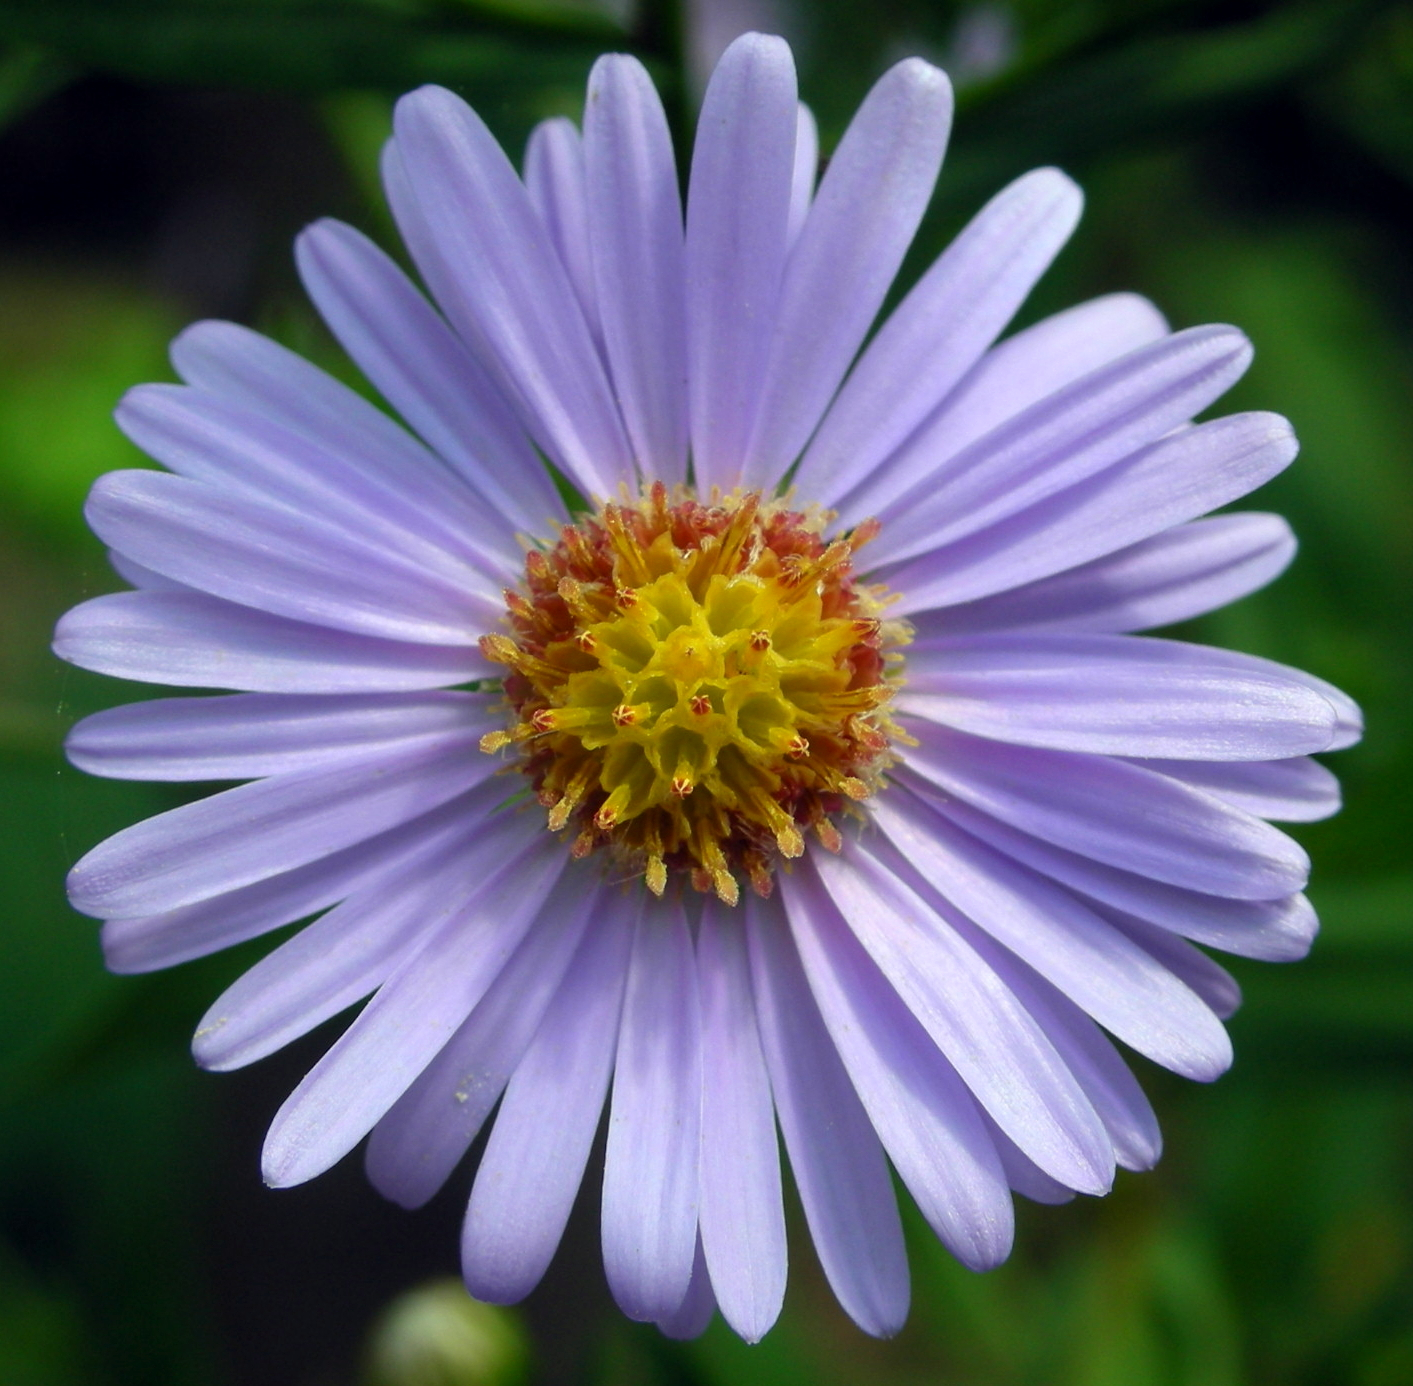 aster_tataricus.jpg?t=1536080699790&width=89&height=87&name=aster_tataricus Landscape with Fall Color Plants